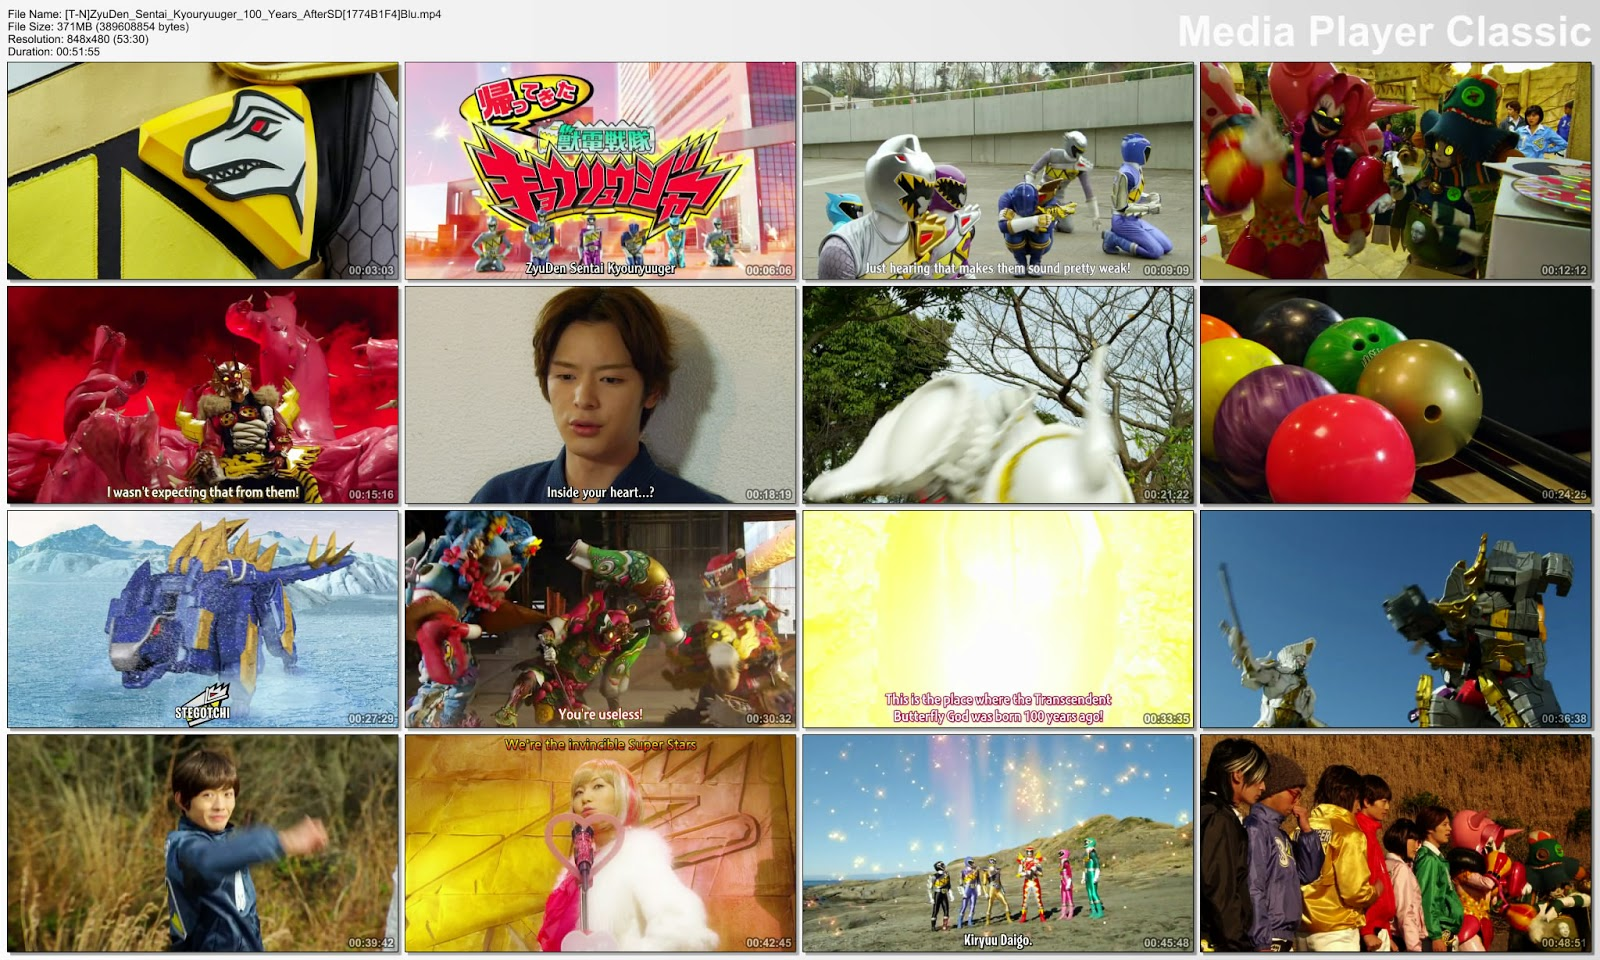 Zyuden Sentai Kyoryuger: 100 Years After (2014)